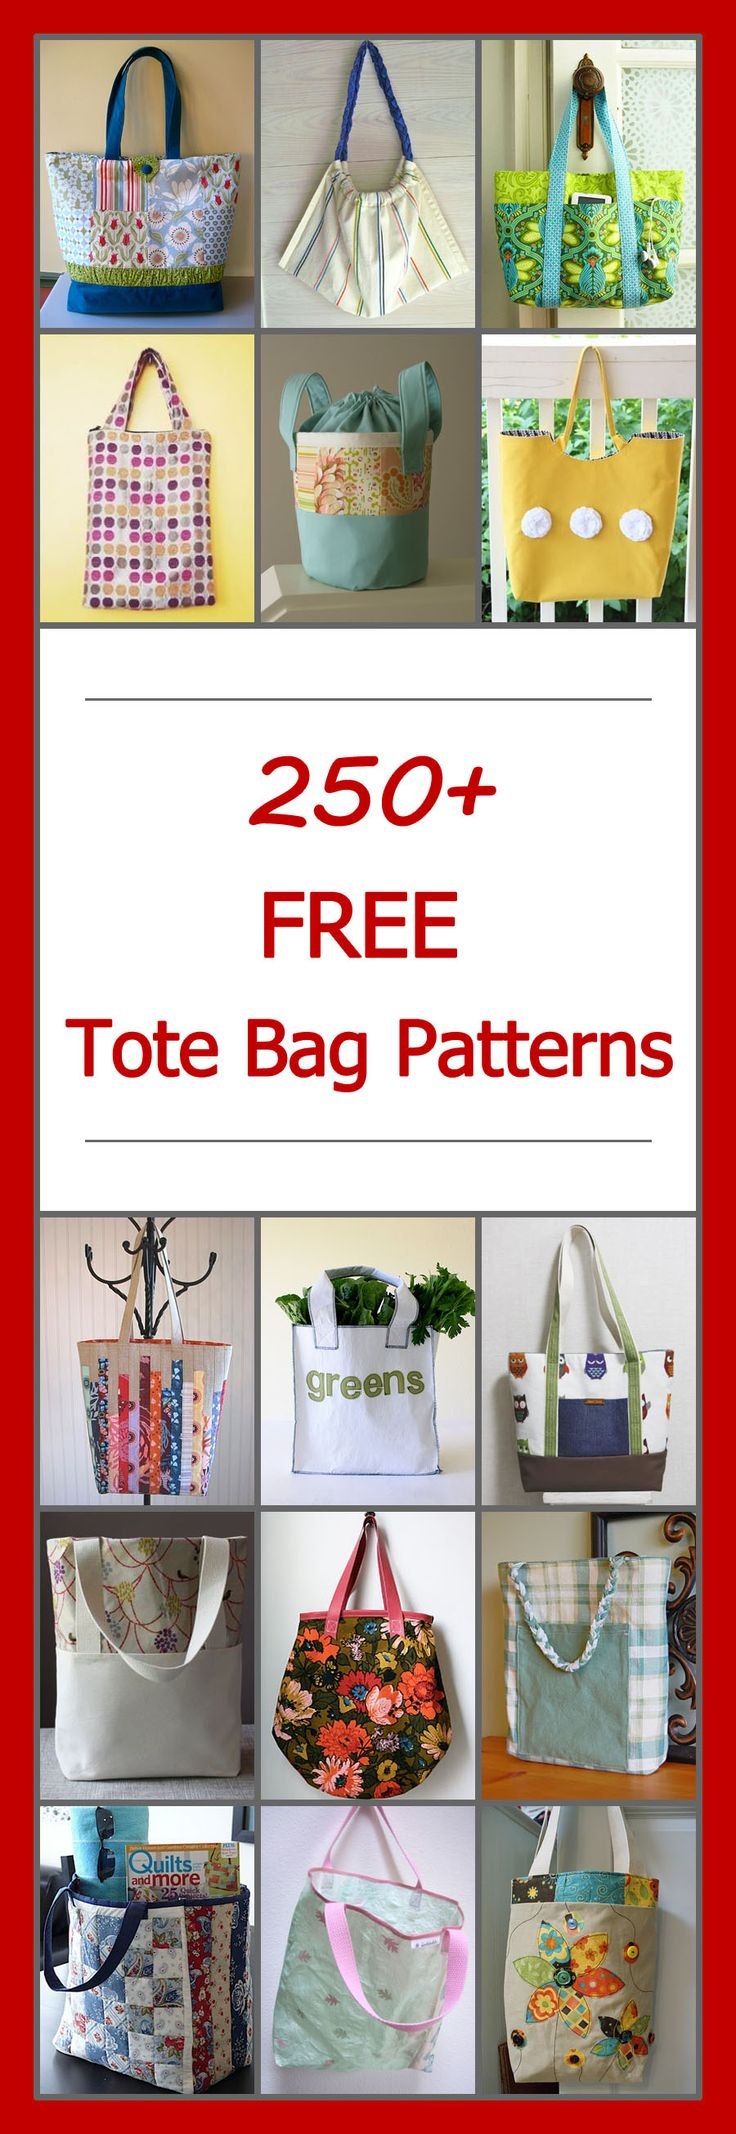 Lots of free tote bag patterns. DIY tote bag sewing projects & tutorials. Many simple and easy, basic designs. Large and small bags, zippered, quilted, lined, canvas, patchwork, and more. #totebagpattern #totebagpatterns